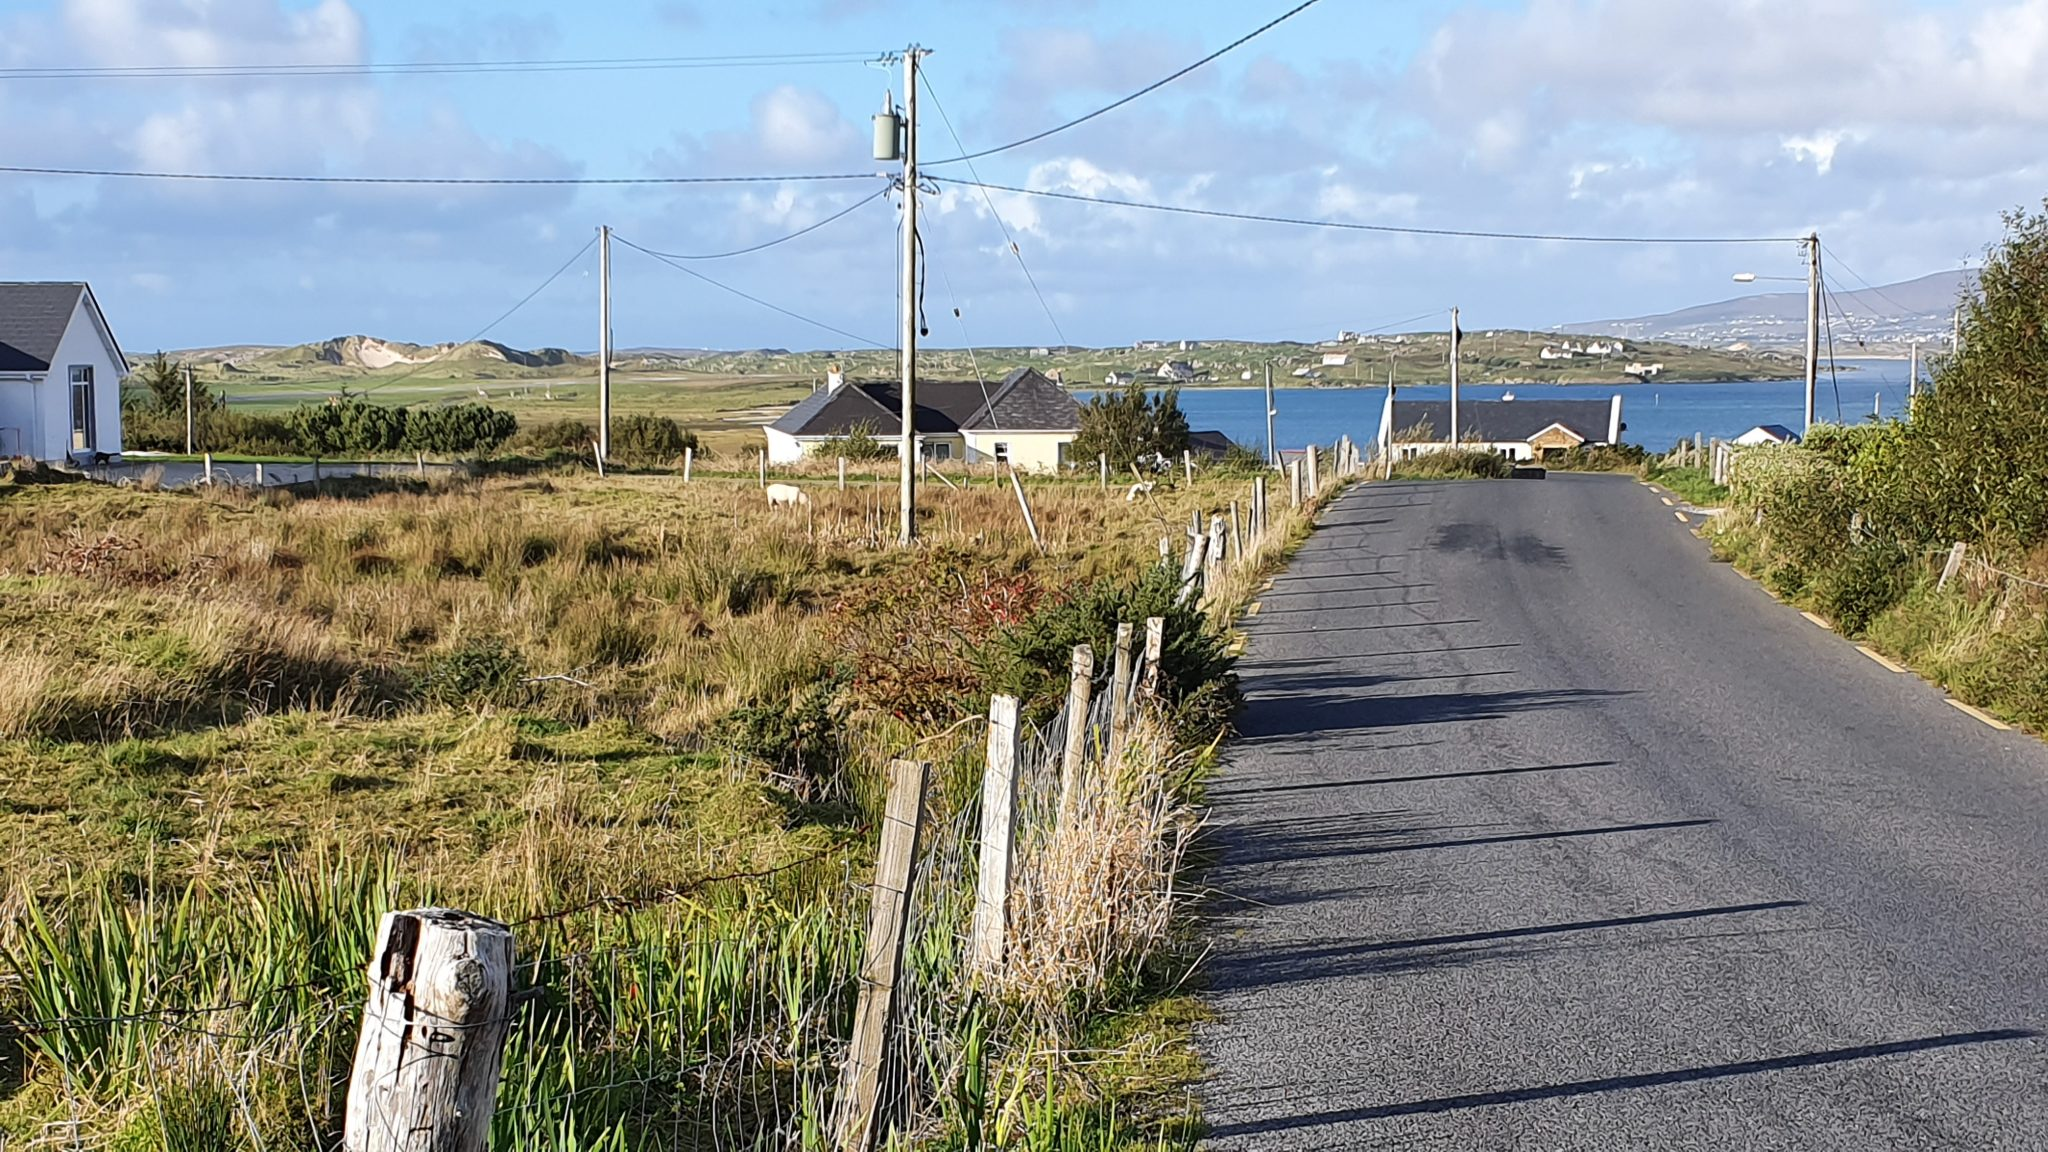 Braade, Kinkasslagh, Co. Donegal – Site For Sale.